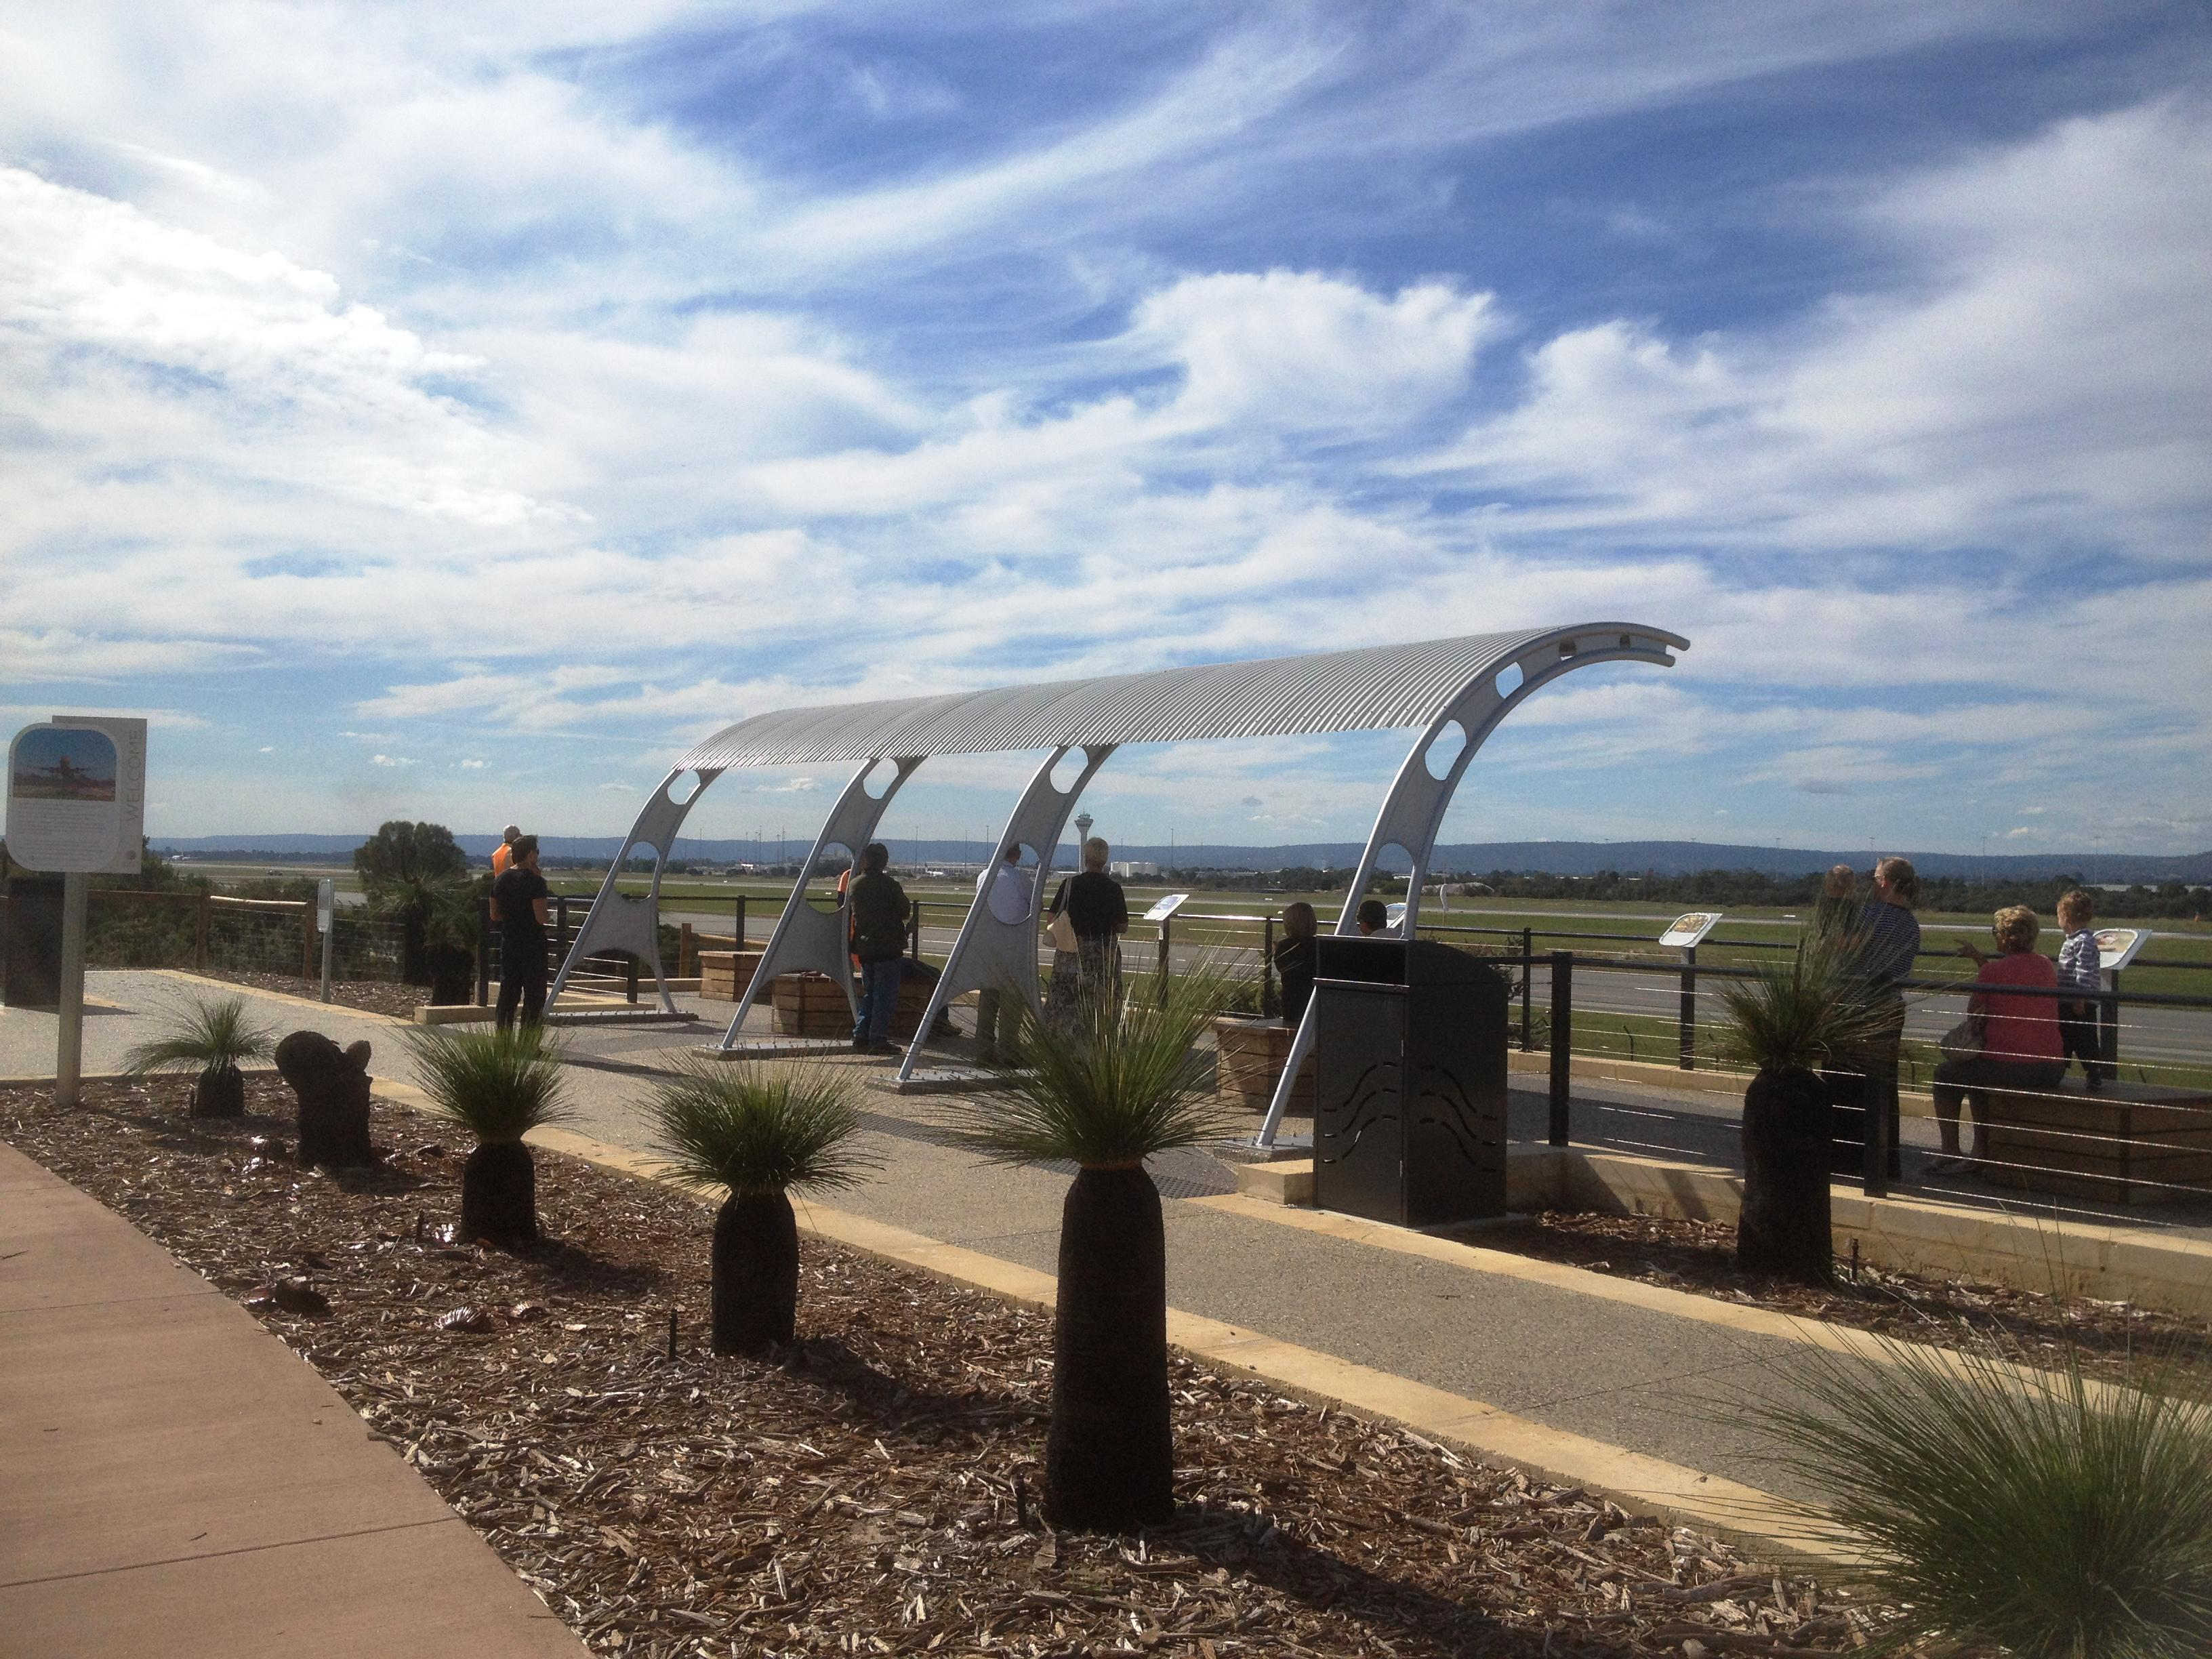 Perth Airport viewing platform